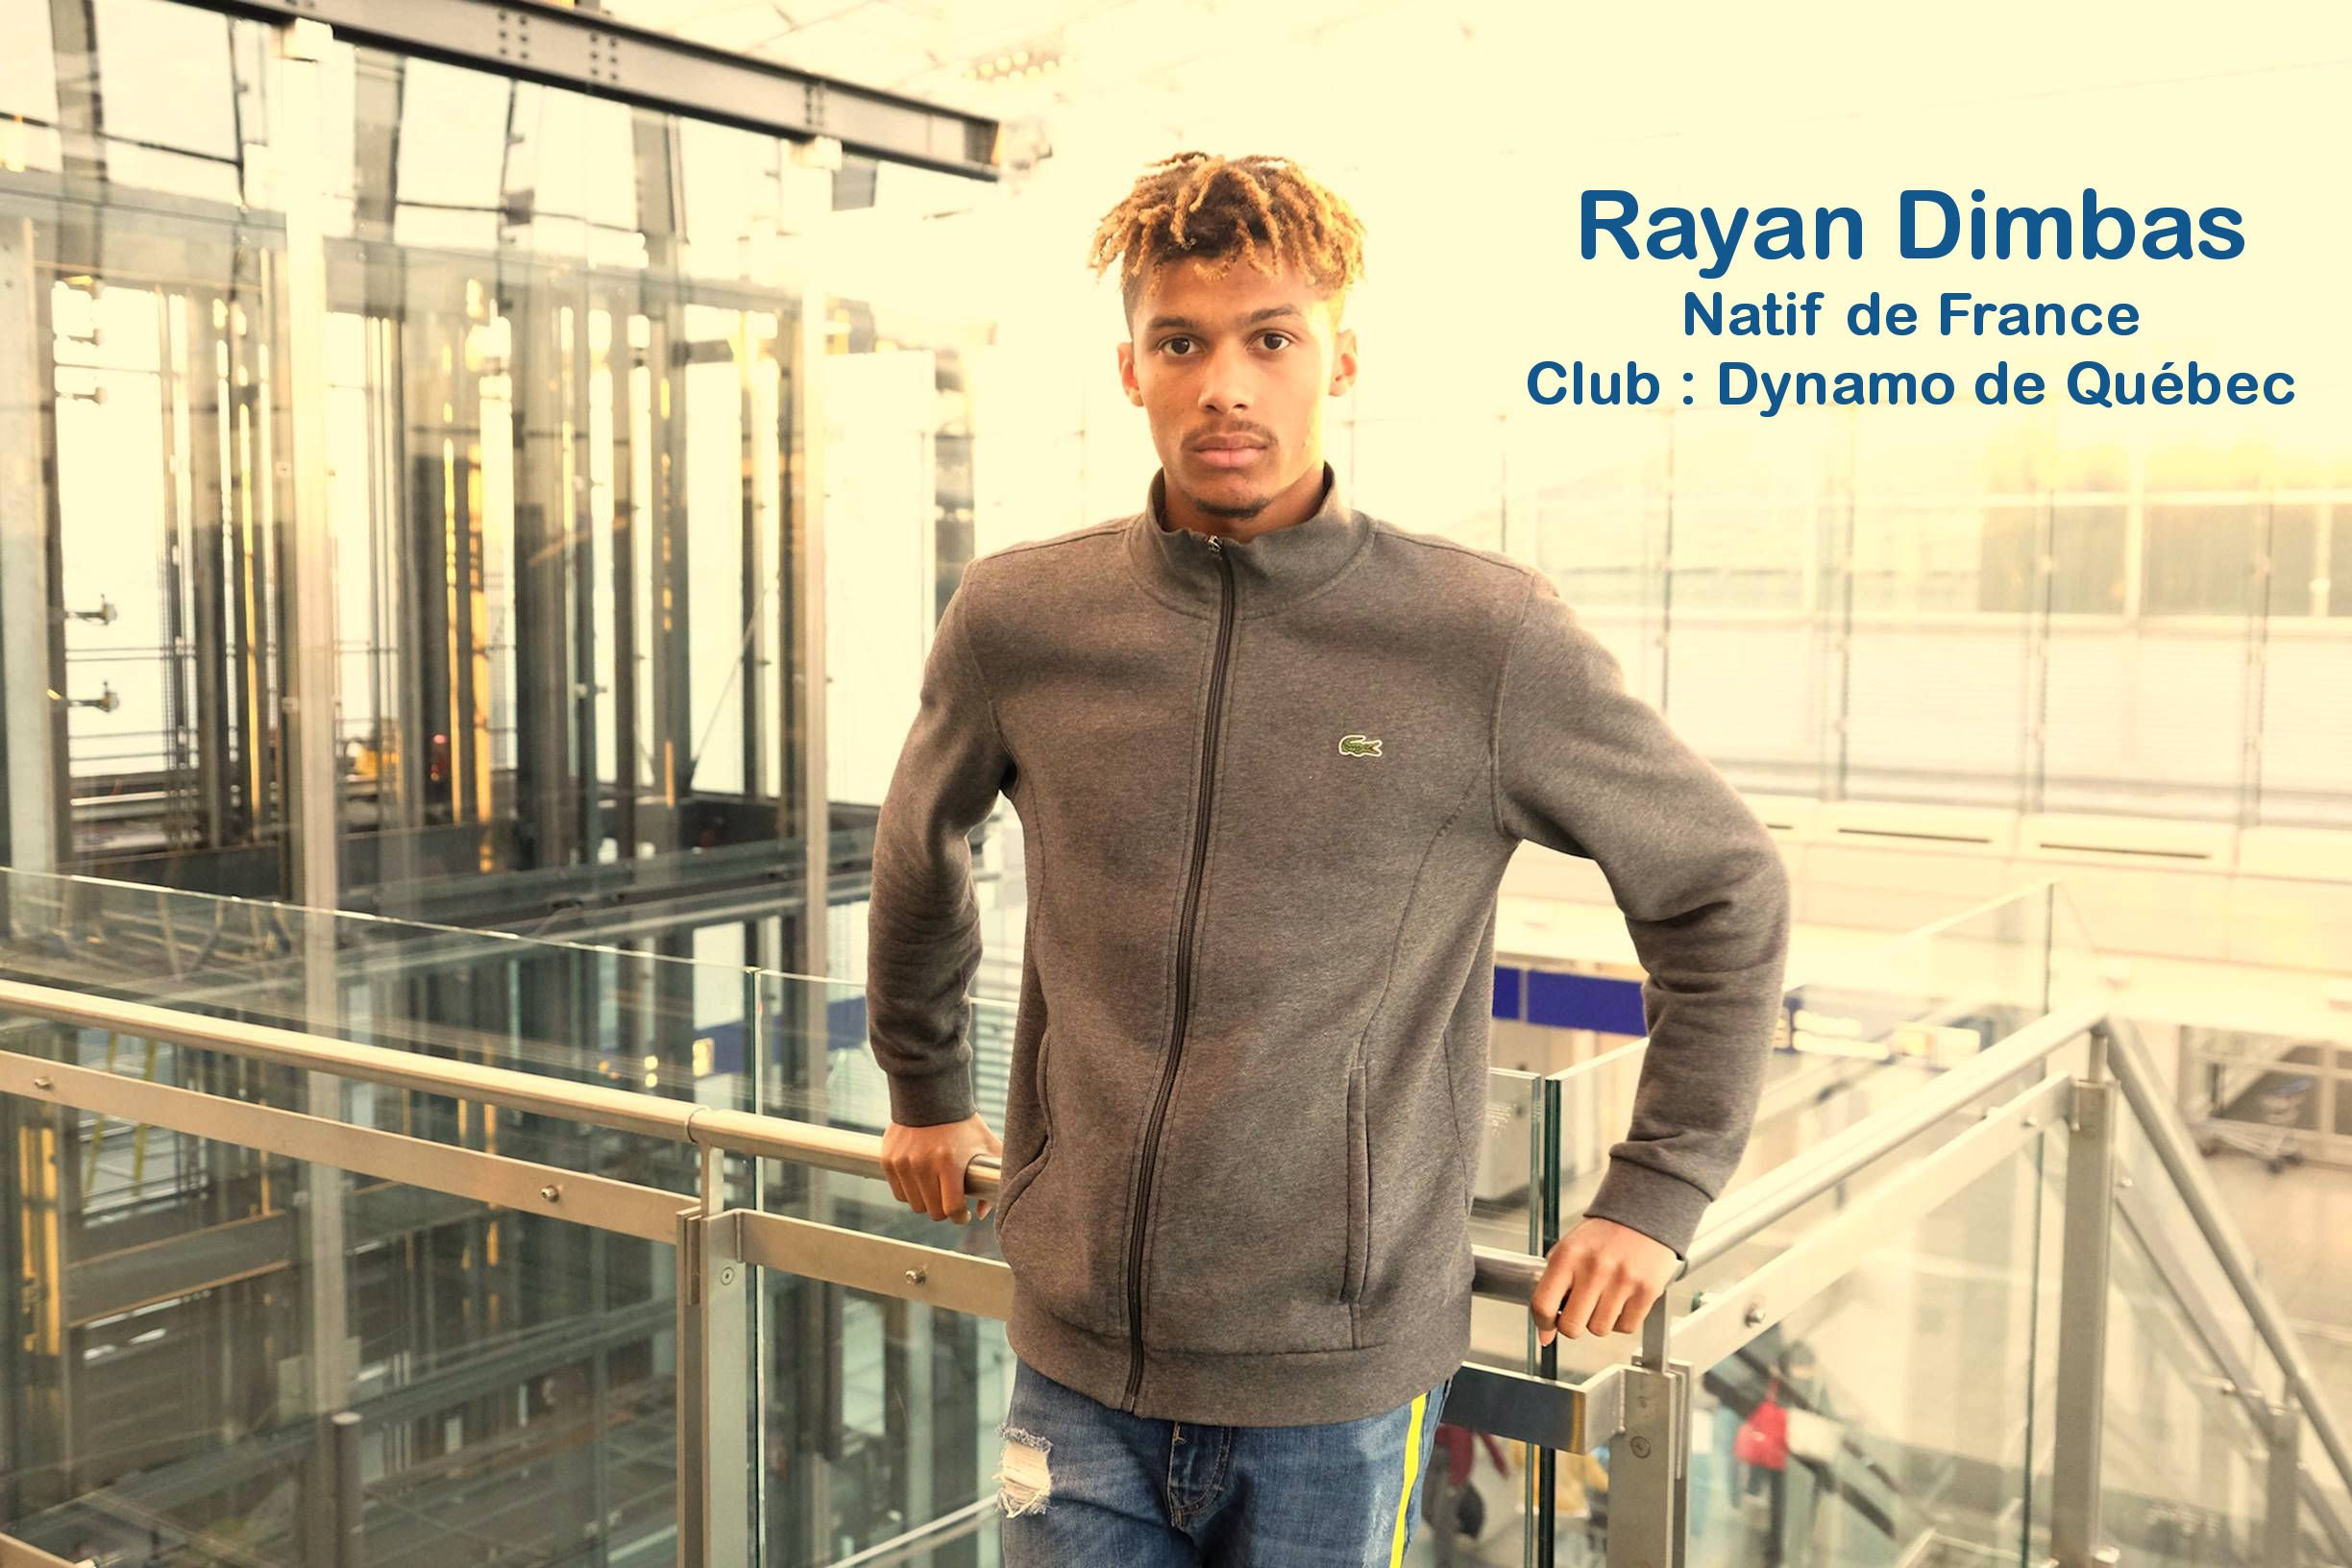 Institut-jmg-try-out-RC-Lens-depart-paris-Rayan-Dimbas